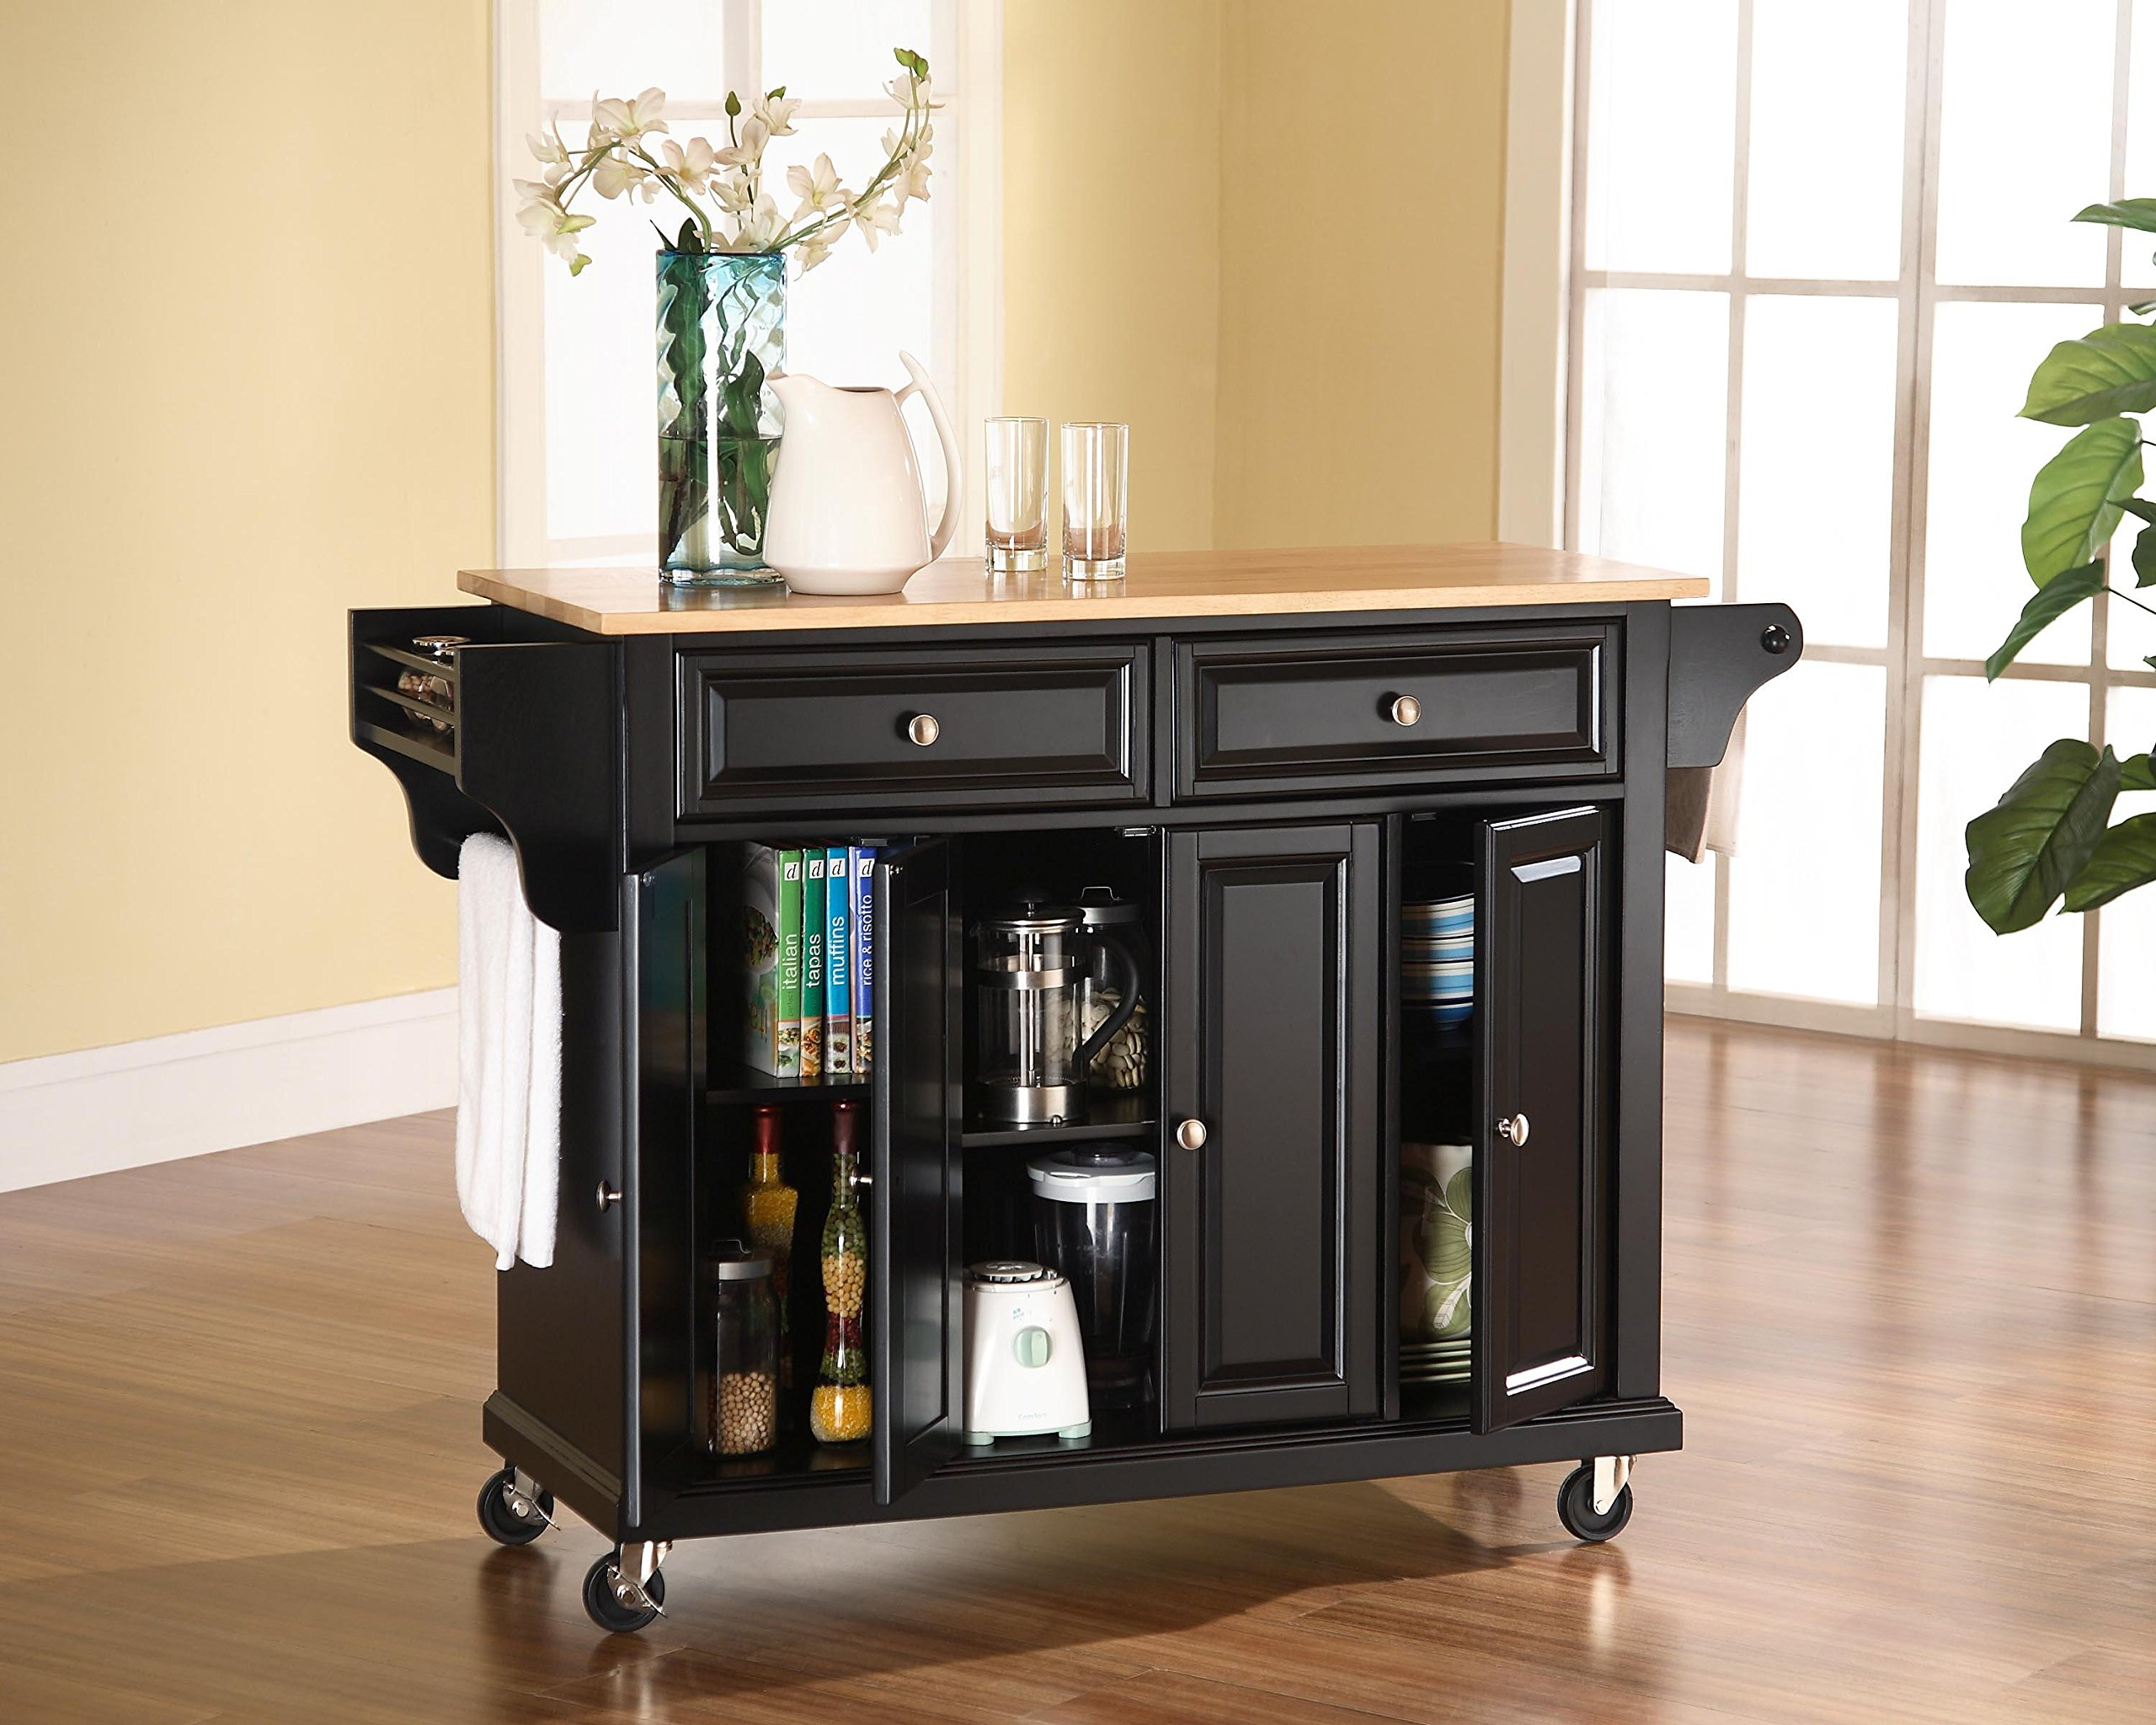 Crosley Furniture Rolling Kitchen Island with Natural Wood Top - White by Crosley Furniture (Image #2)